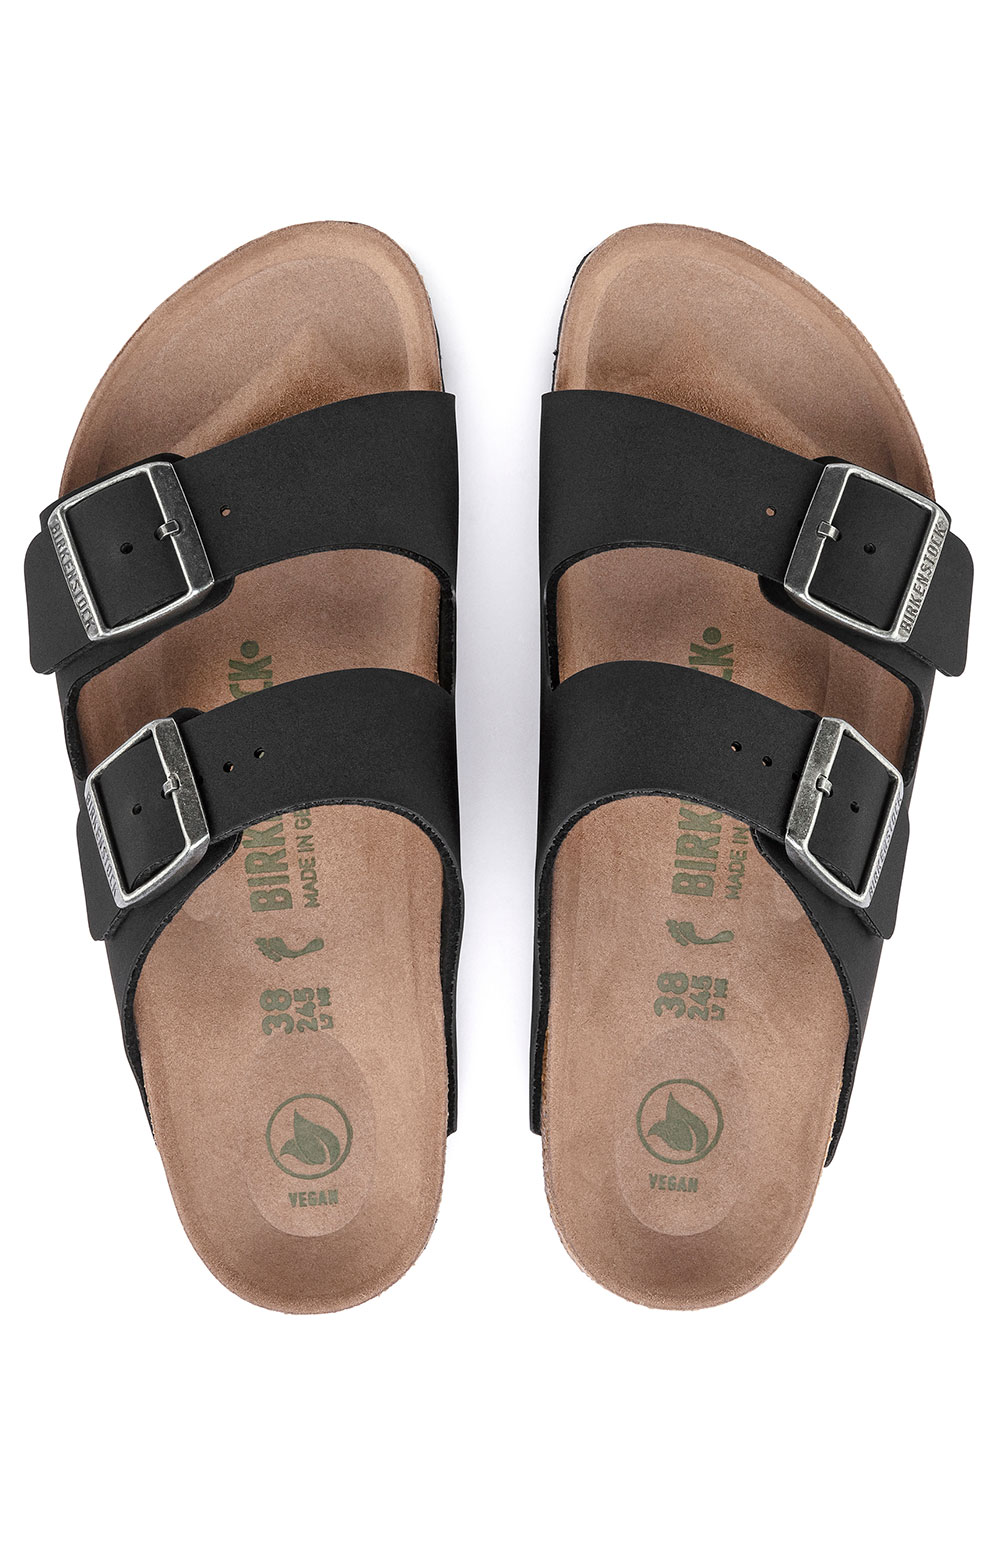 (1019115) Arizona Vegan Sandals - Black 5